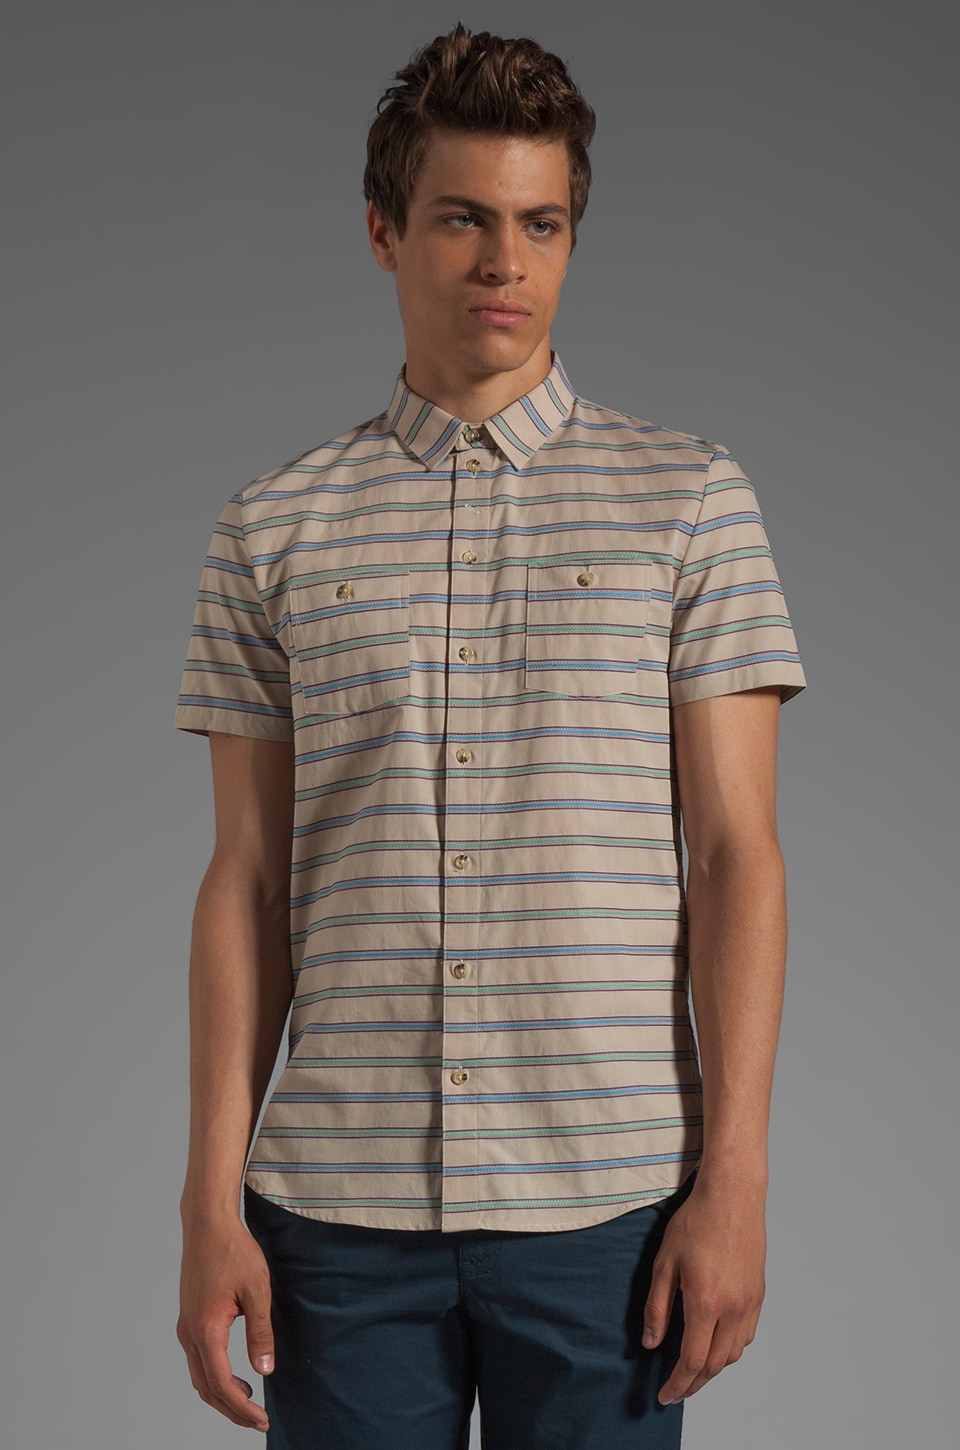 COMUNE Foster S/S Shirt in Tan